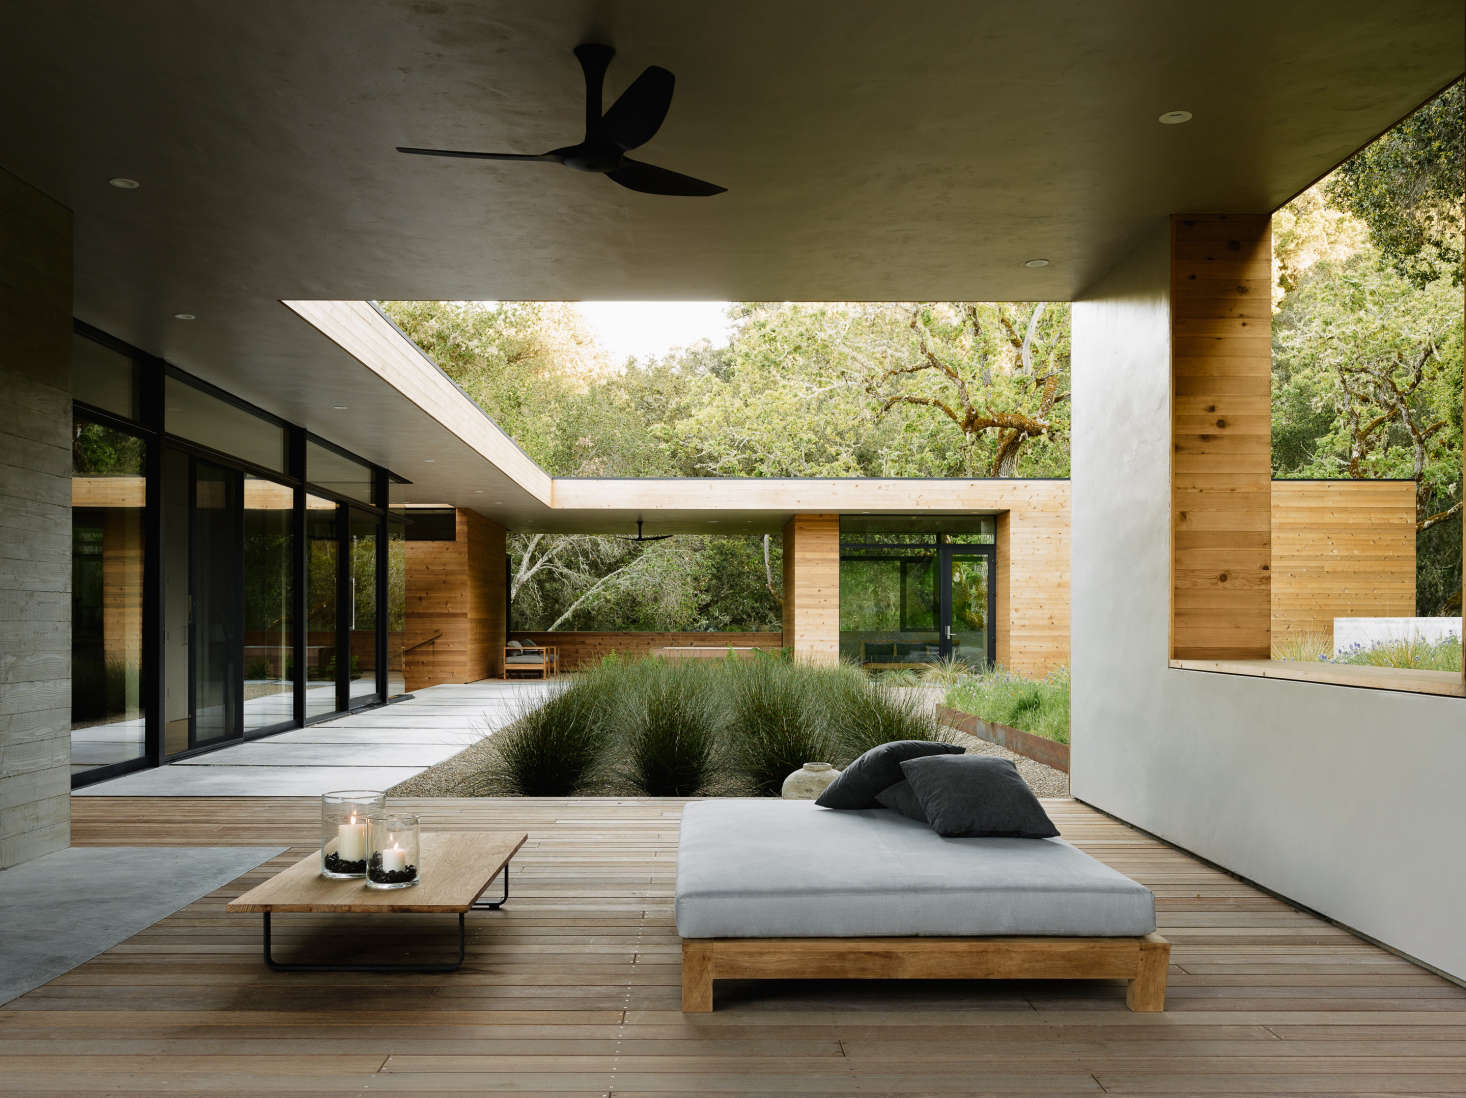 In Carmel Valley, California architects Sagan Piechota, and contractors Stocker Allaire designed an outdoor living room with plaster walls and a batu wood deck, jutting off the main, indoor living room. Photograph by Joe Fletcher courtesy of Sagan Piechota Architecture, from The California Life, Outdoor Living Room Included.